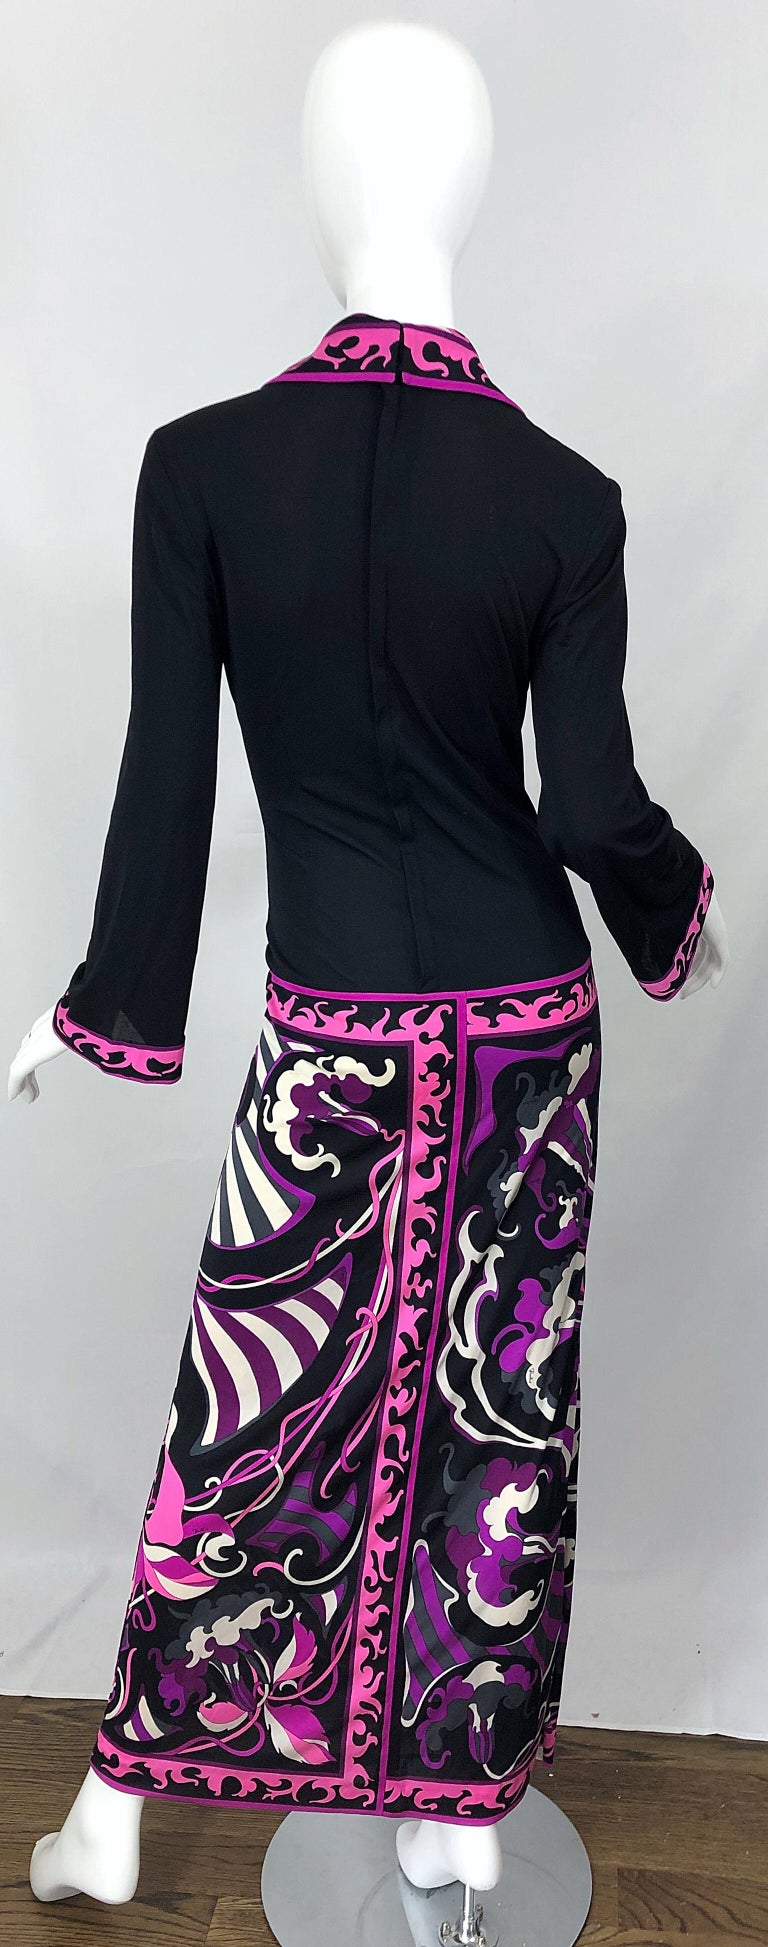 Emilio Pucci 1970s Silk Jersey Pink Purple Black Vintage 70s Maxi Dress In Excellent Condition For Sale In Chicago, IL